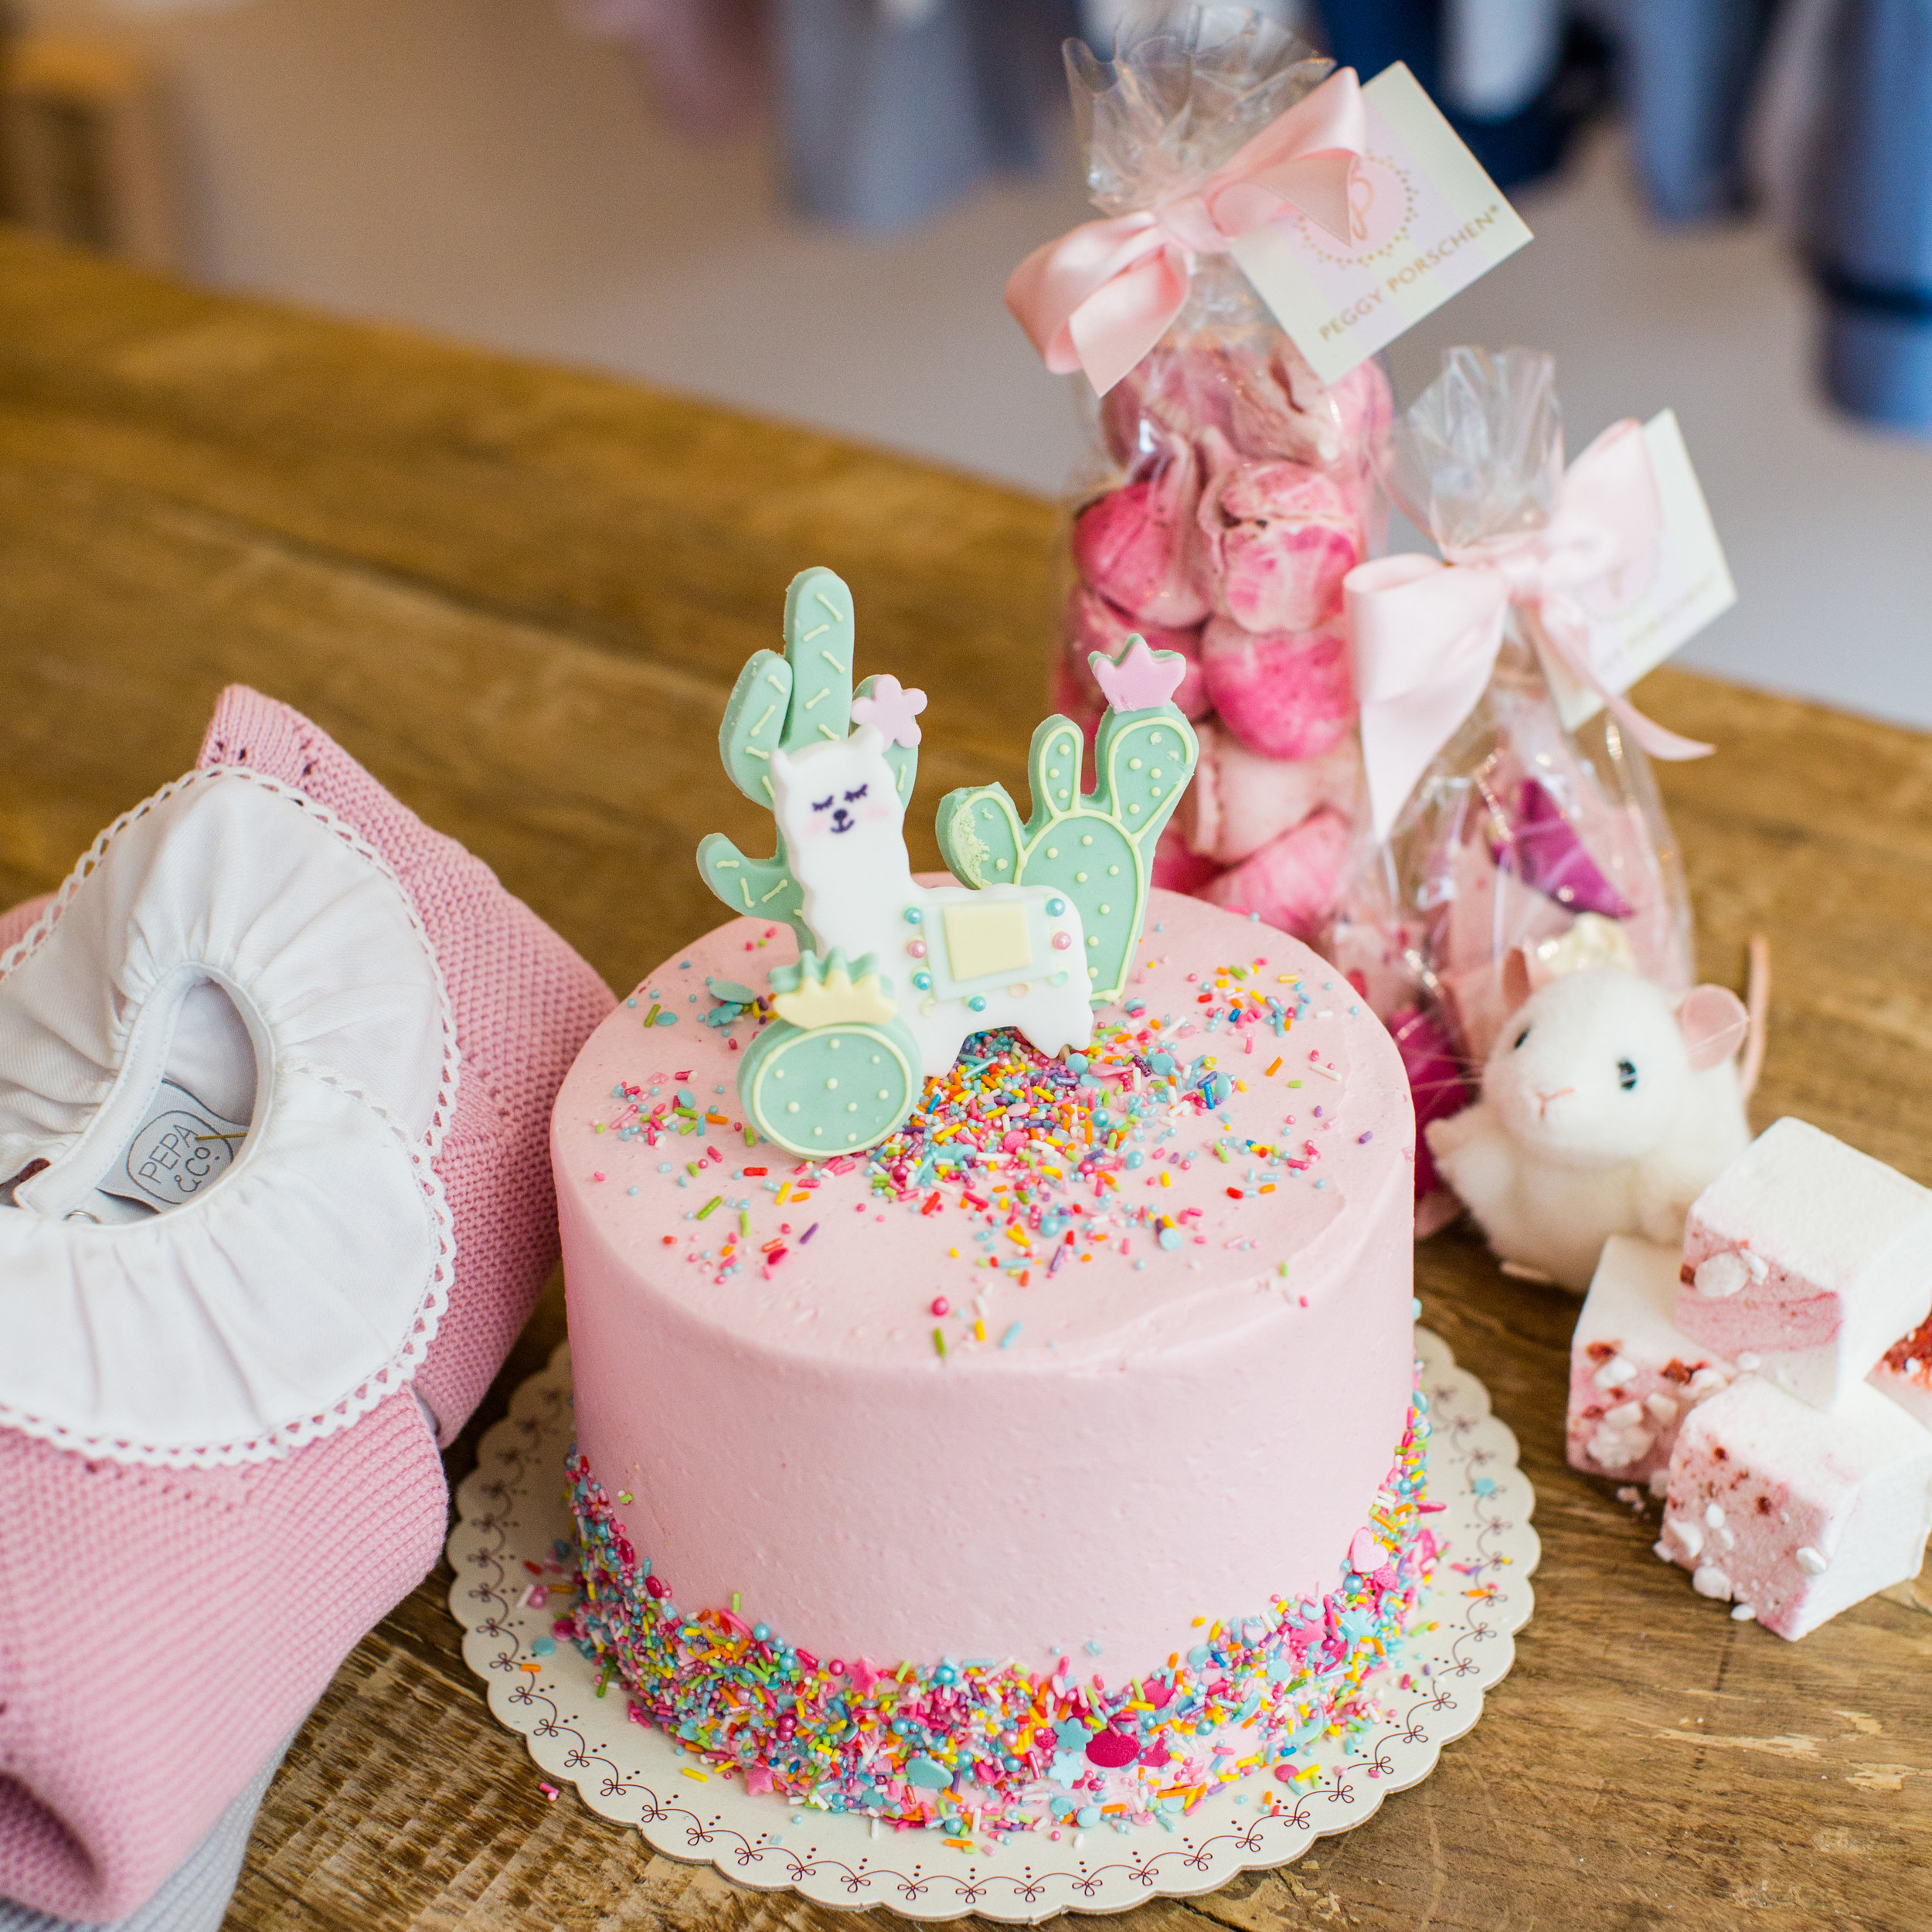 Photographer for Pepa and Co, Prince George's favourite childrenswear shop Belgravia Store, London - photo of Peggy Porschen Llama birthday cake in pink with Pepa and Co childrens clothing